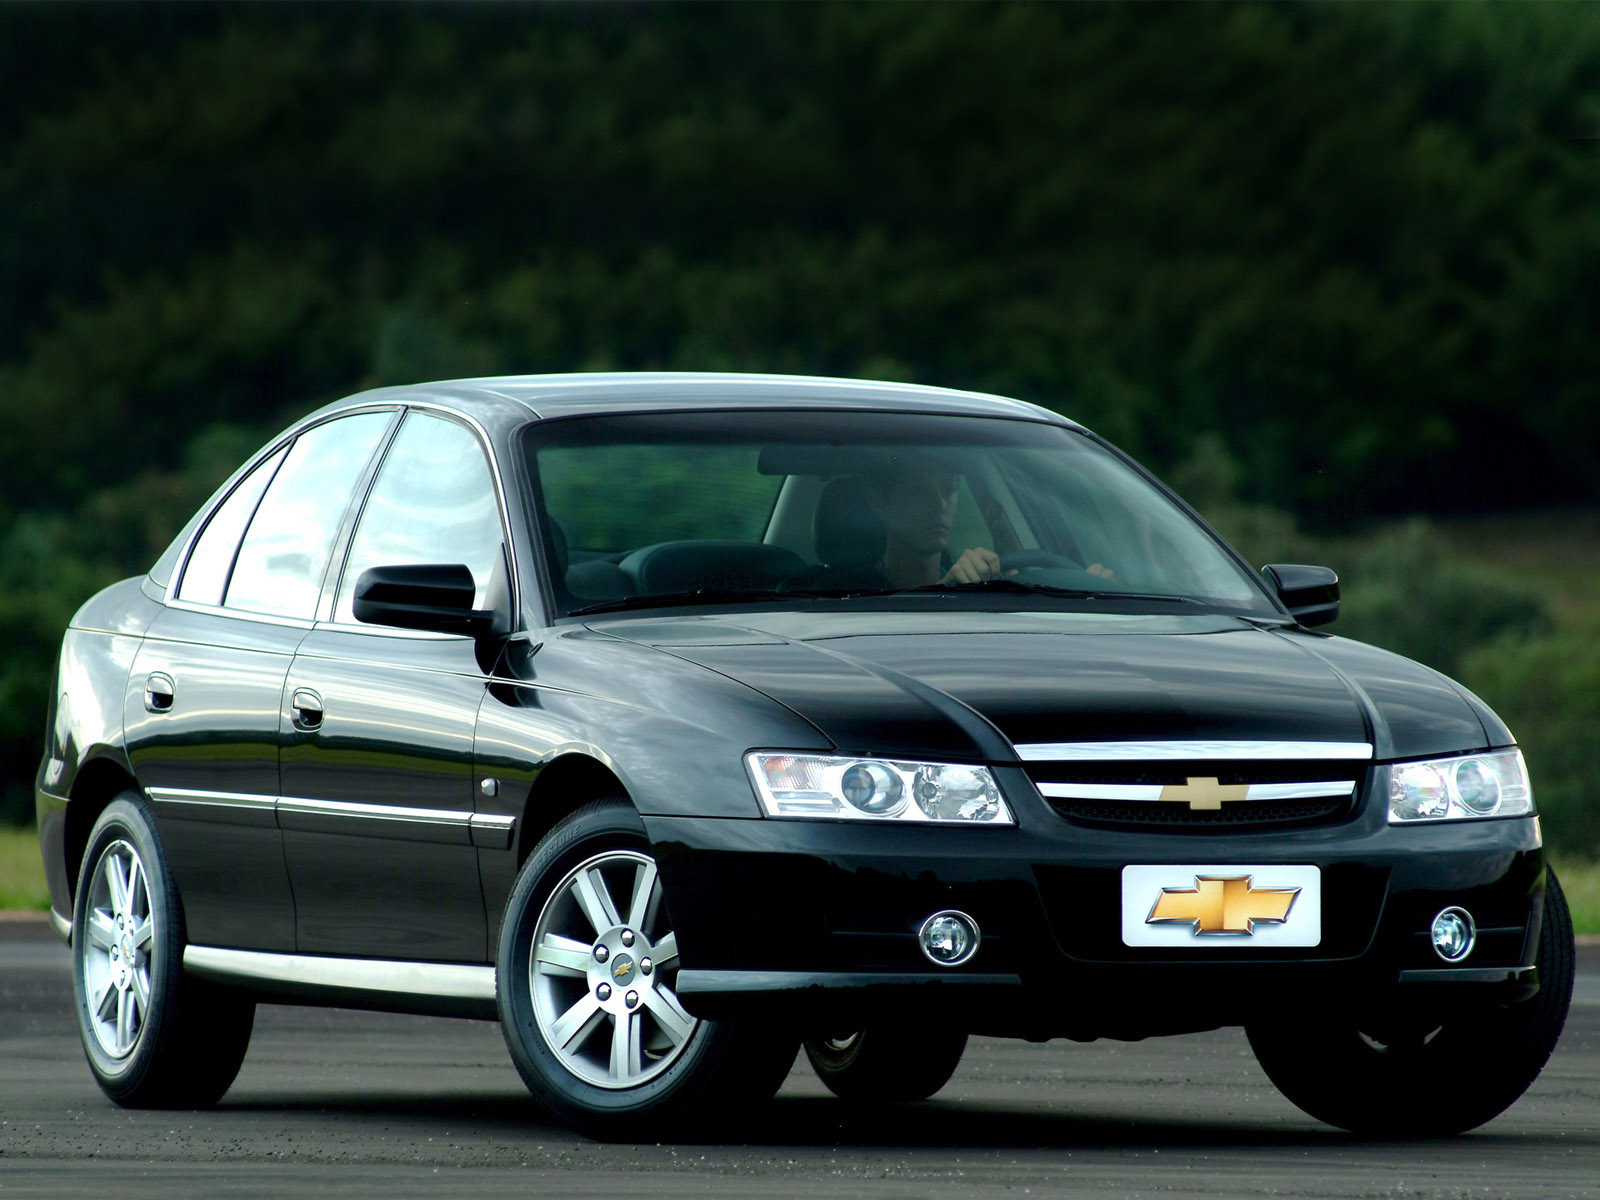 Chevrolet Omega   pictures, information and specs - Auto-Database.com